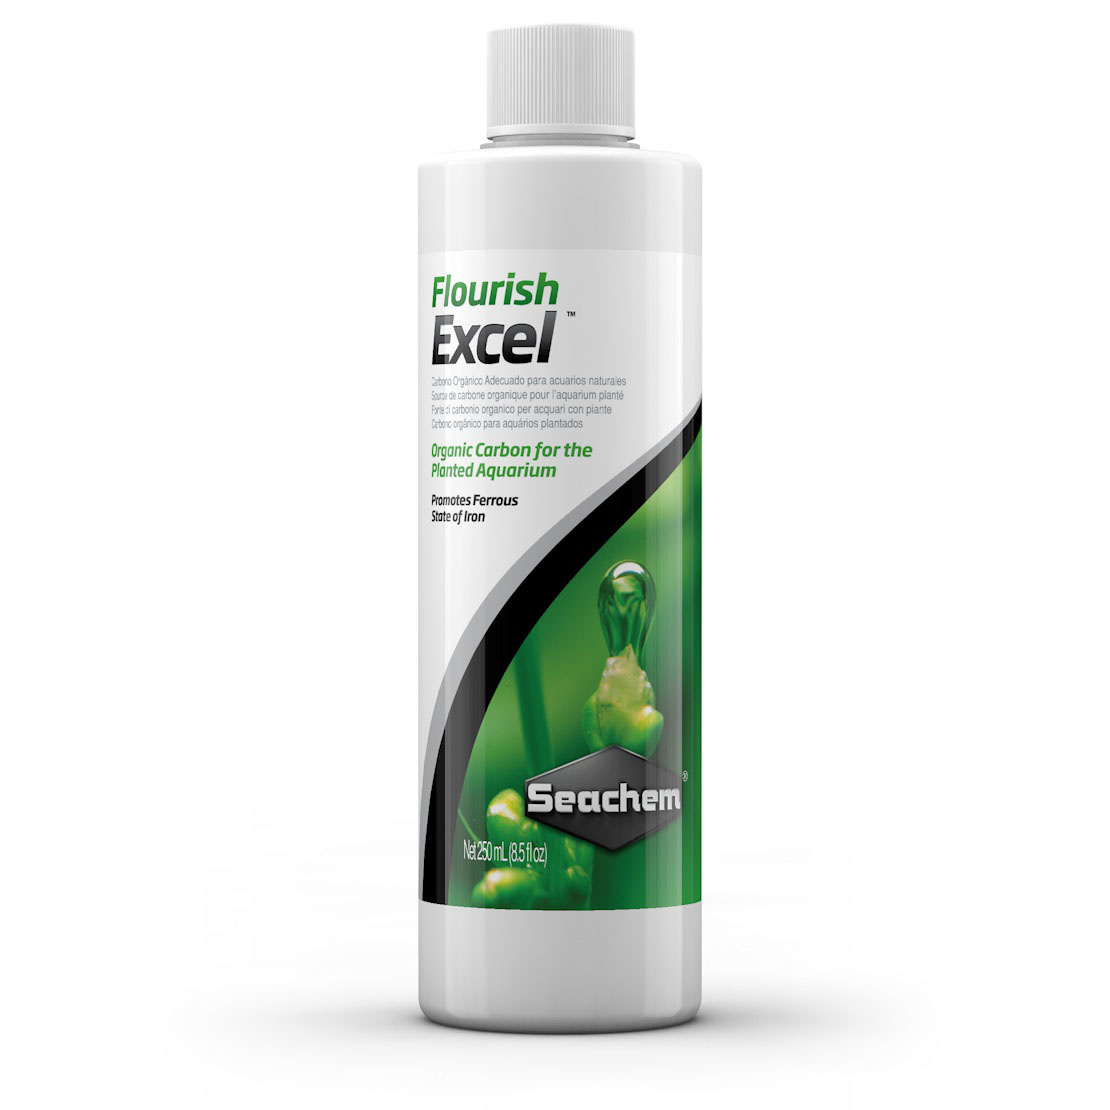 Seachem Florish Excel 100ml